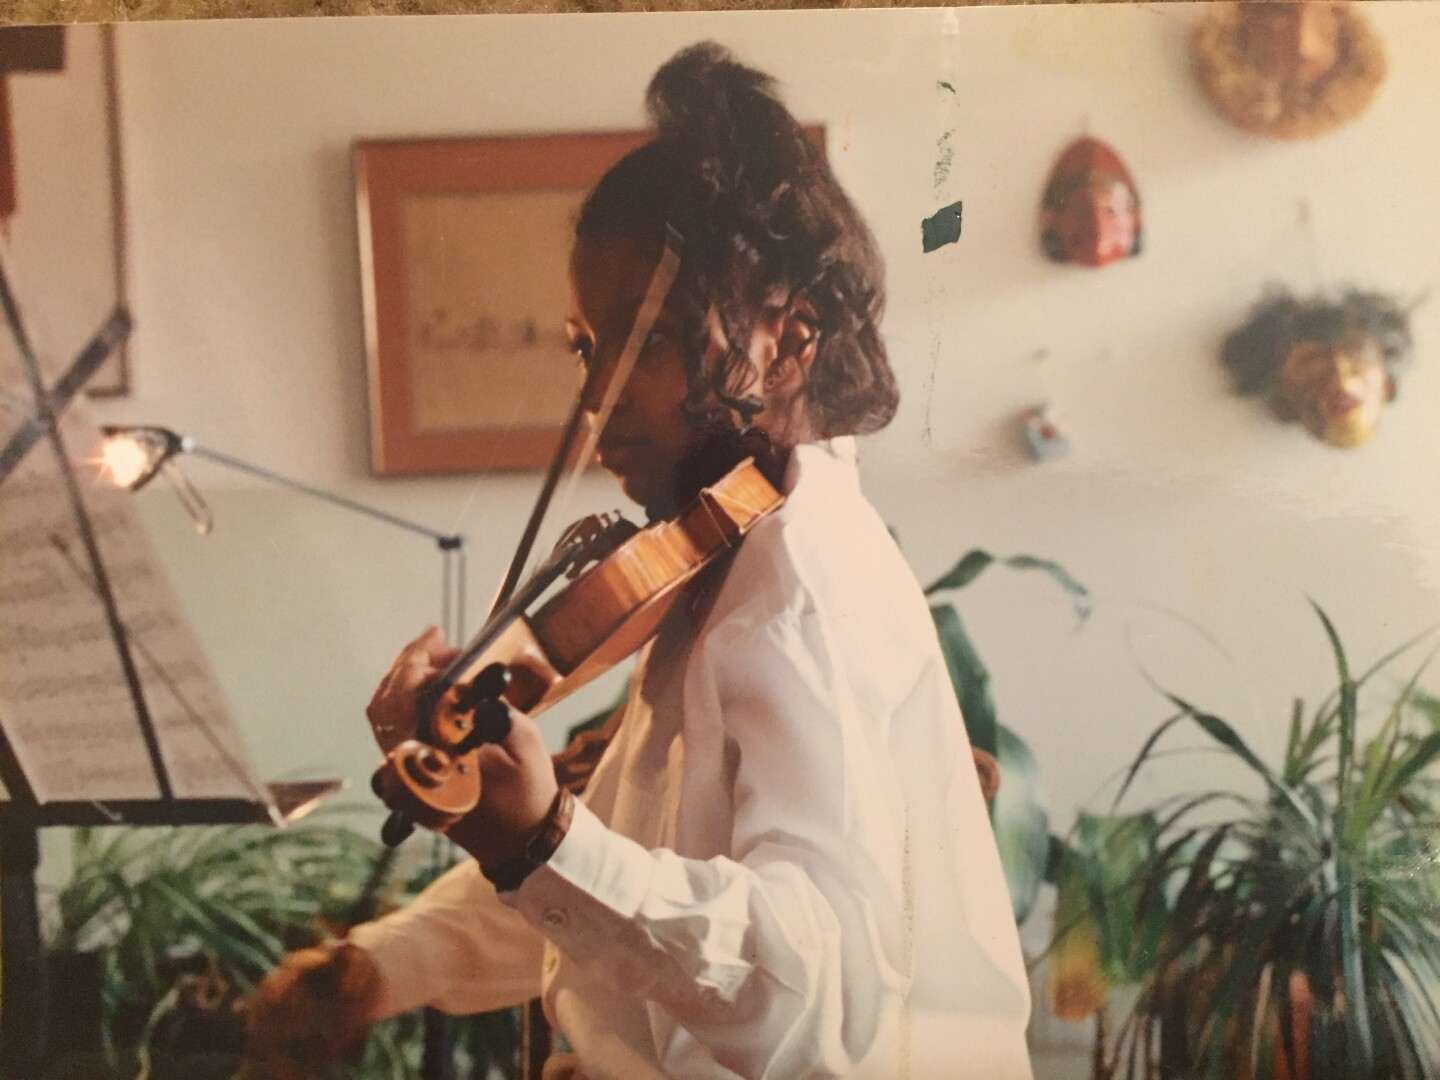 A young woman playing the violin.